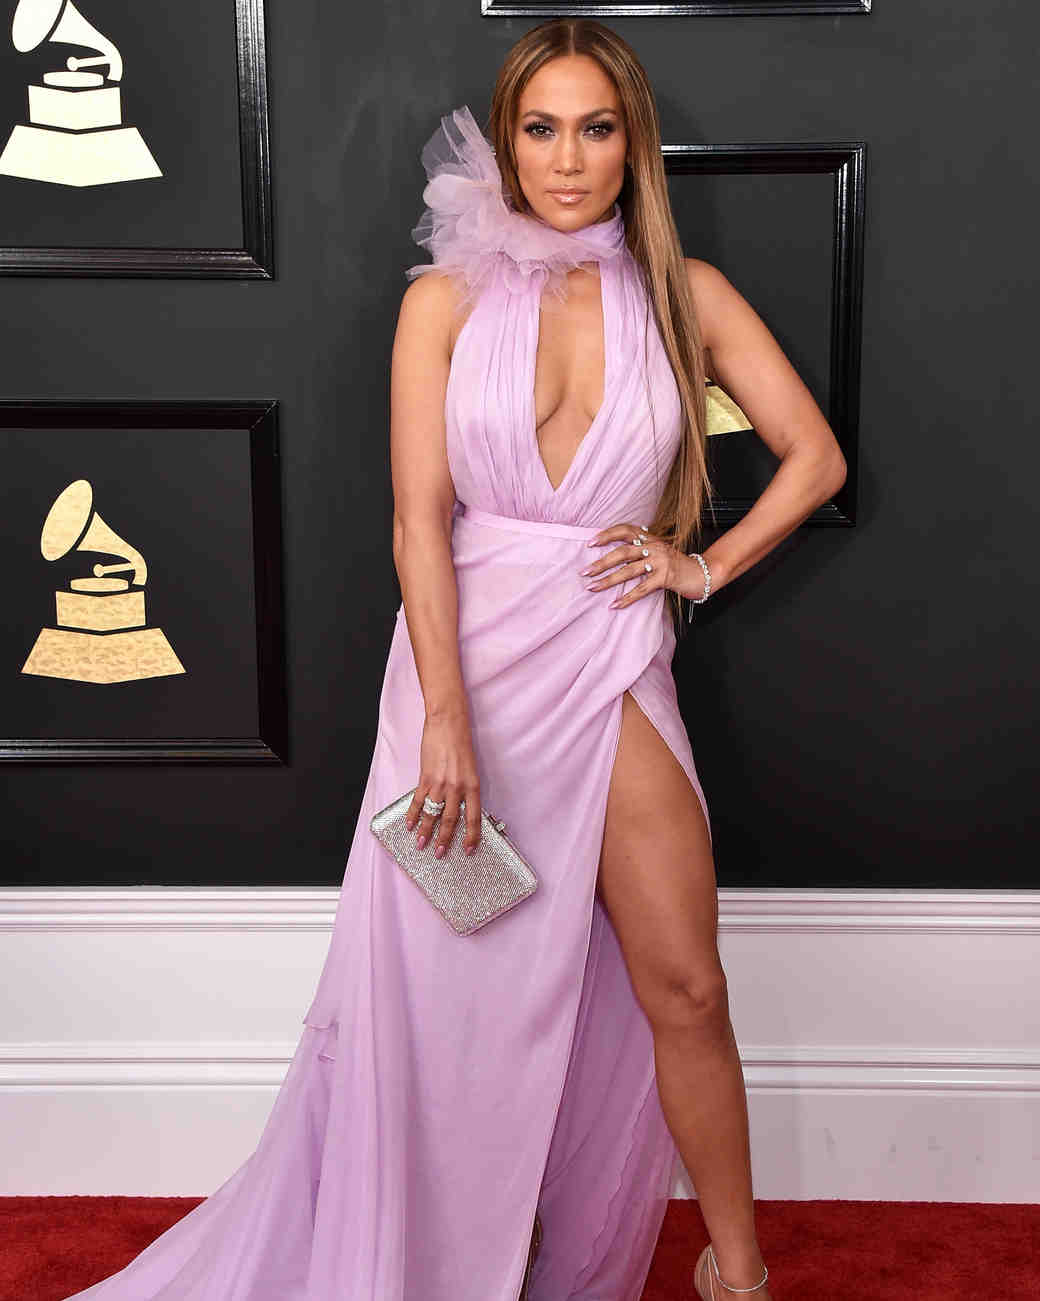 Jennifer Lopez at the 2017 Grammy Awards